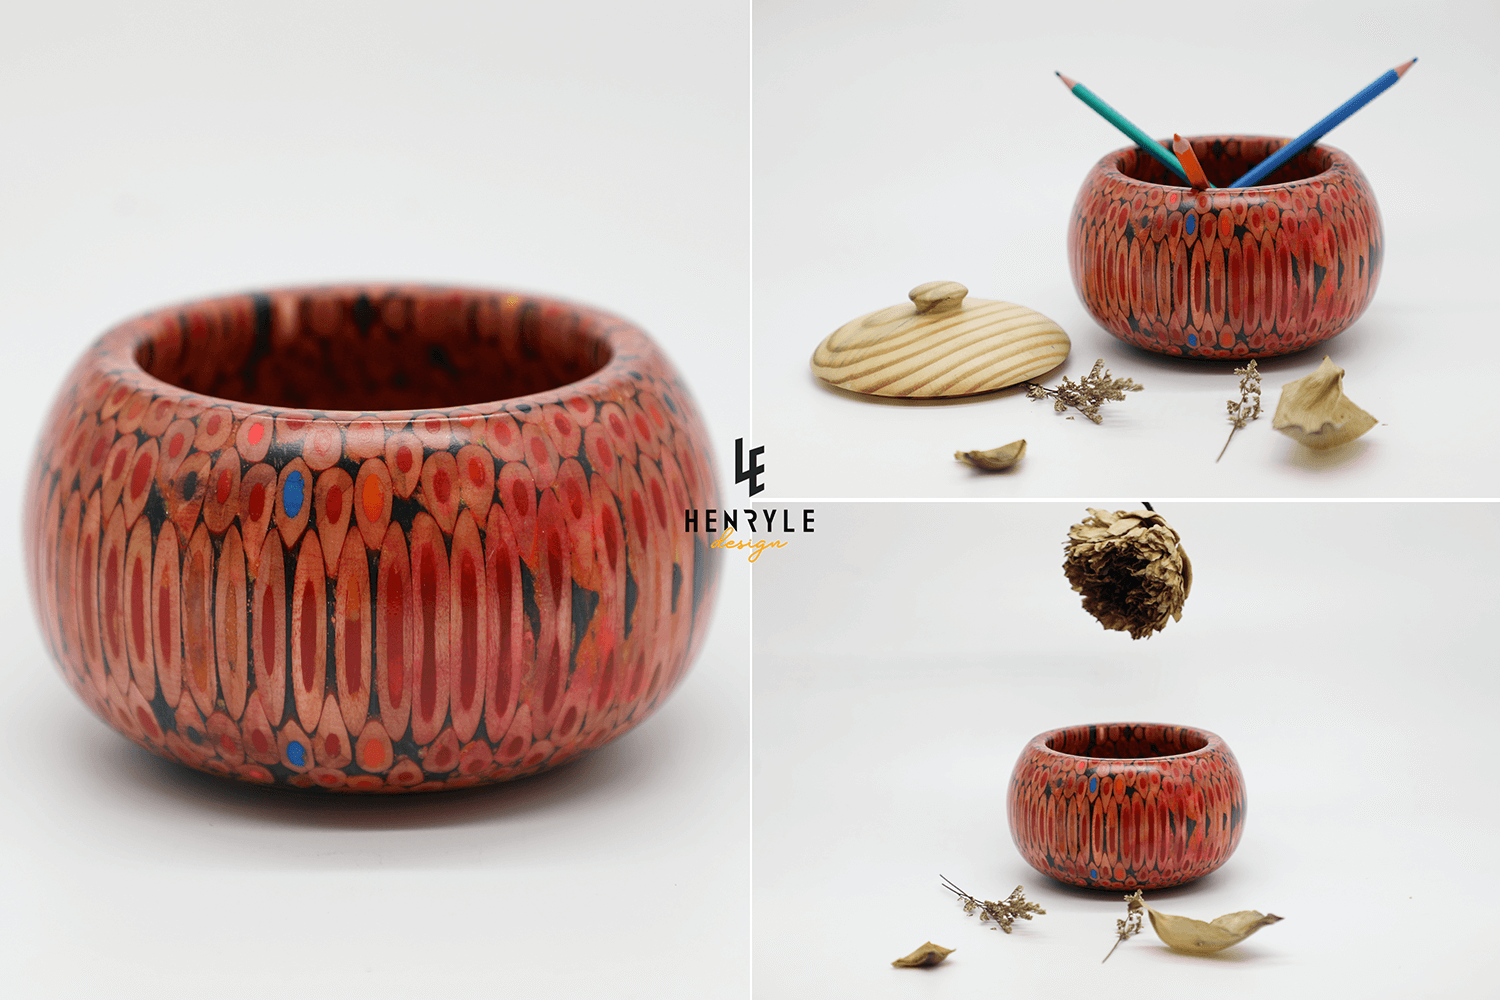 Unique Wooden & Colored-Pencil Vases